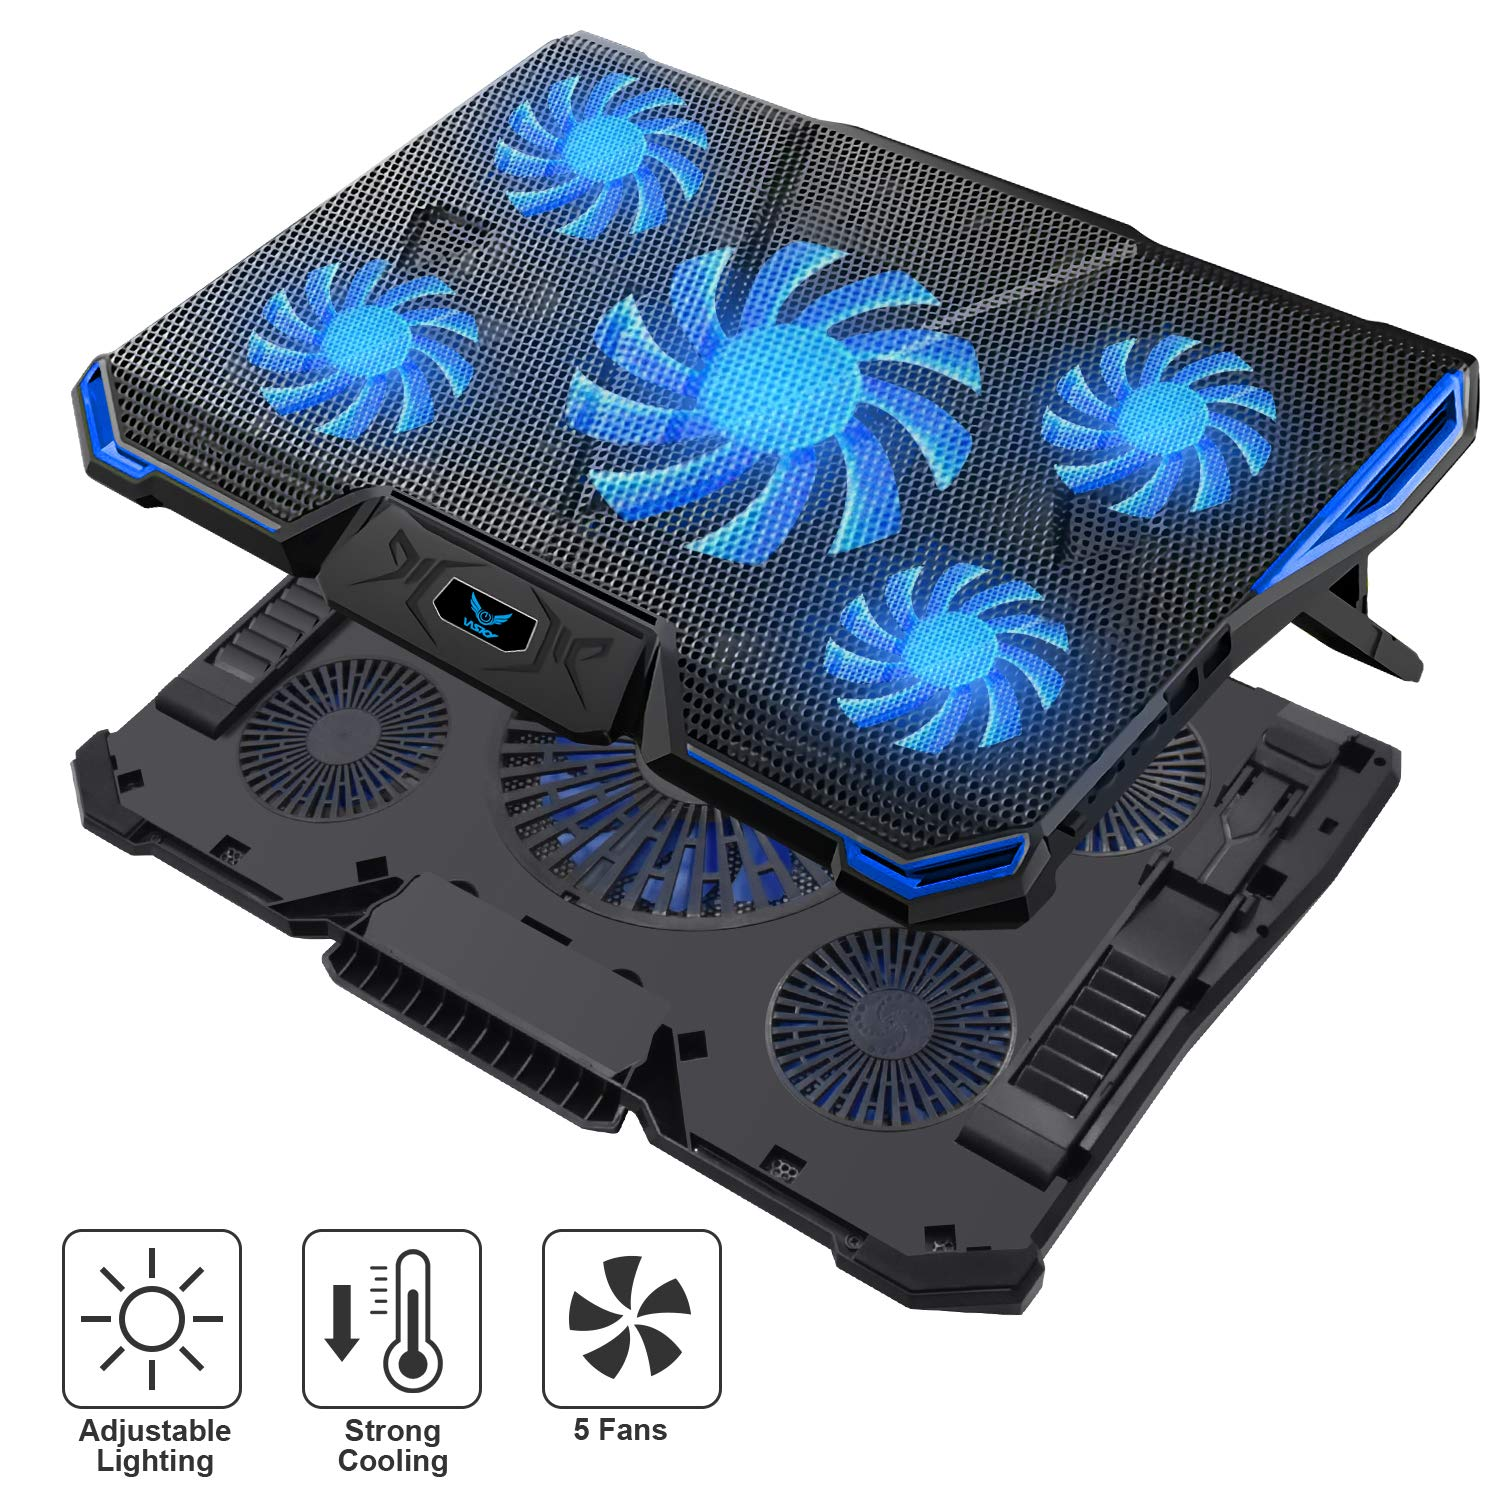 Wsky Cooler Laptop, Ultra Slim Cooling Pad for 12-18 inch Laptop with 5 Quiet Fans and Blue LED Light, Dual 2 USB 2.0 Ports, Adjustable Mount Stand Height Angle